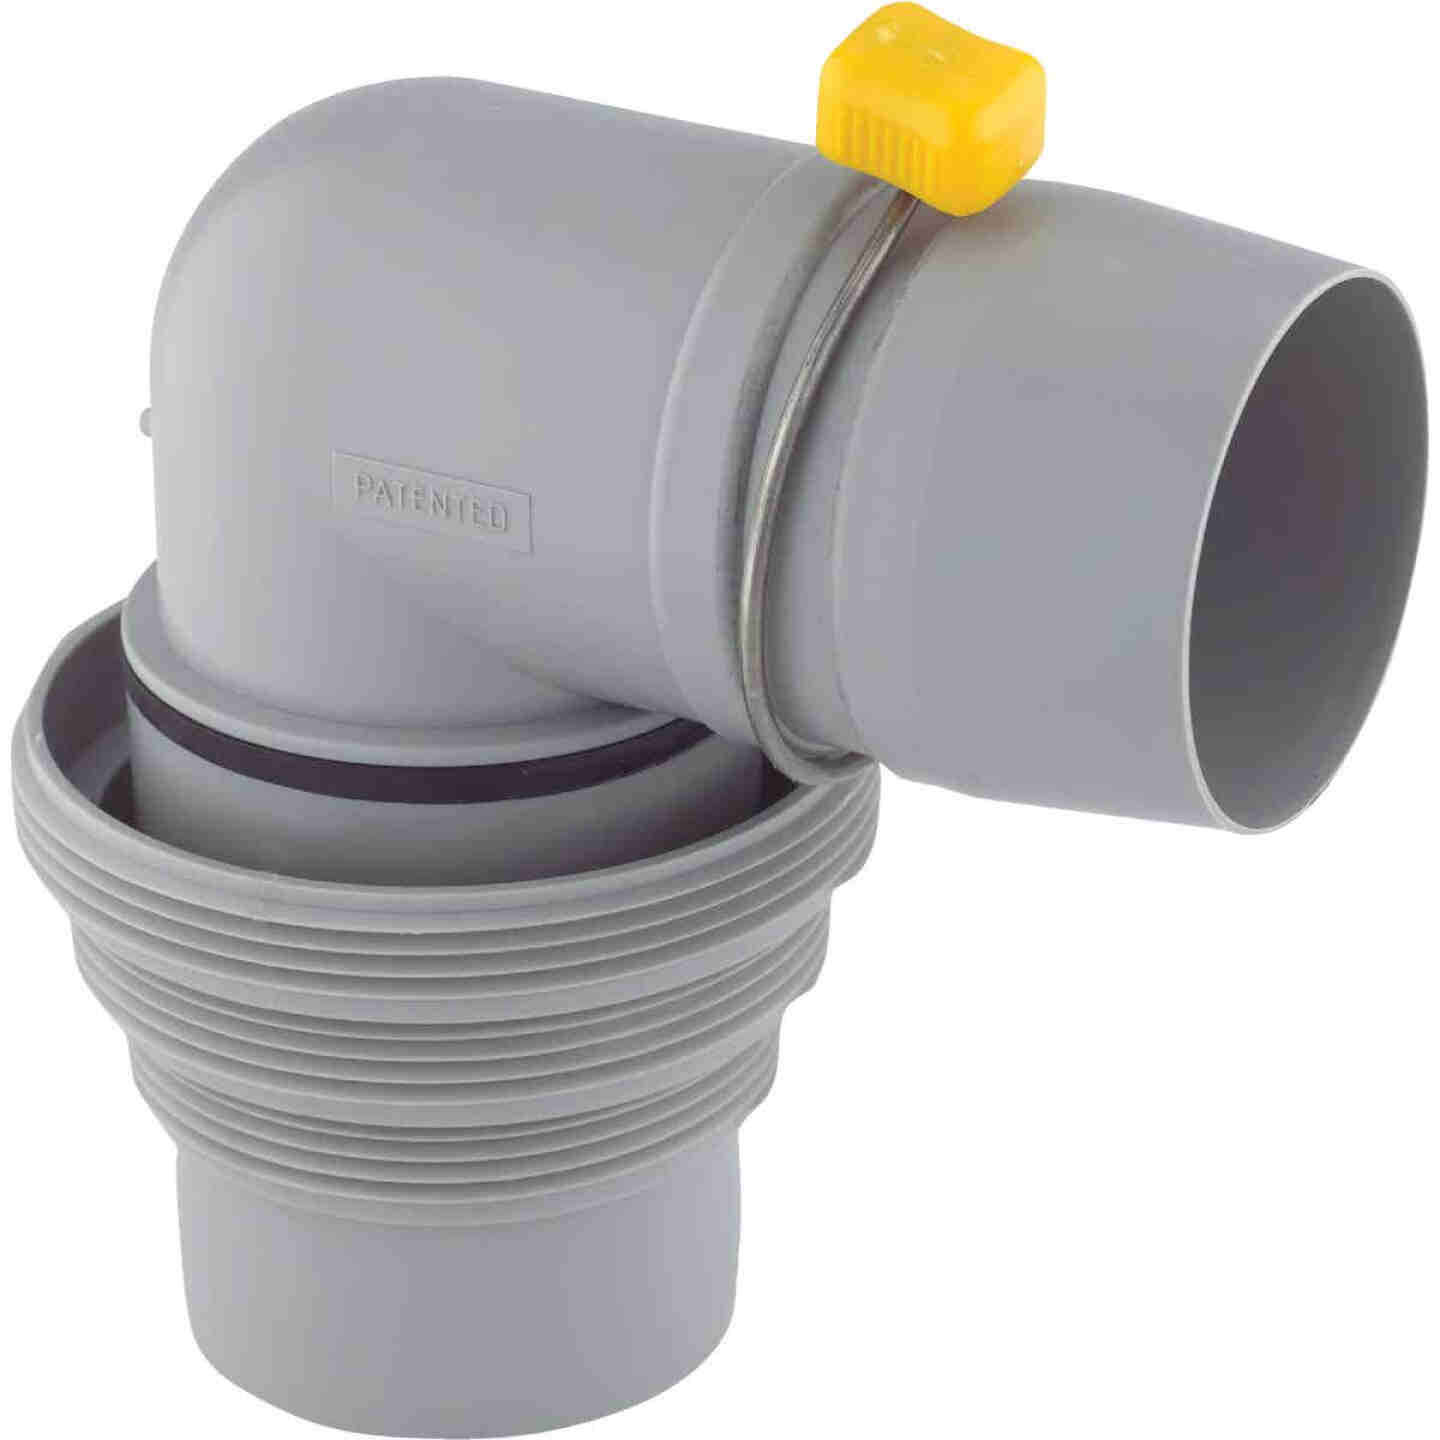 Camco RV Sewer Hose Adapter Image 3